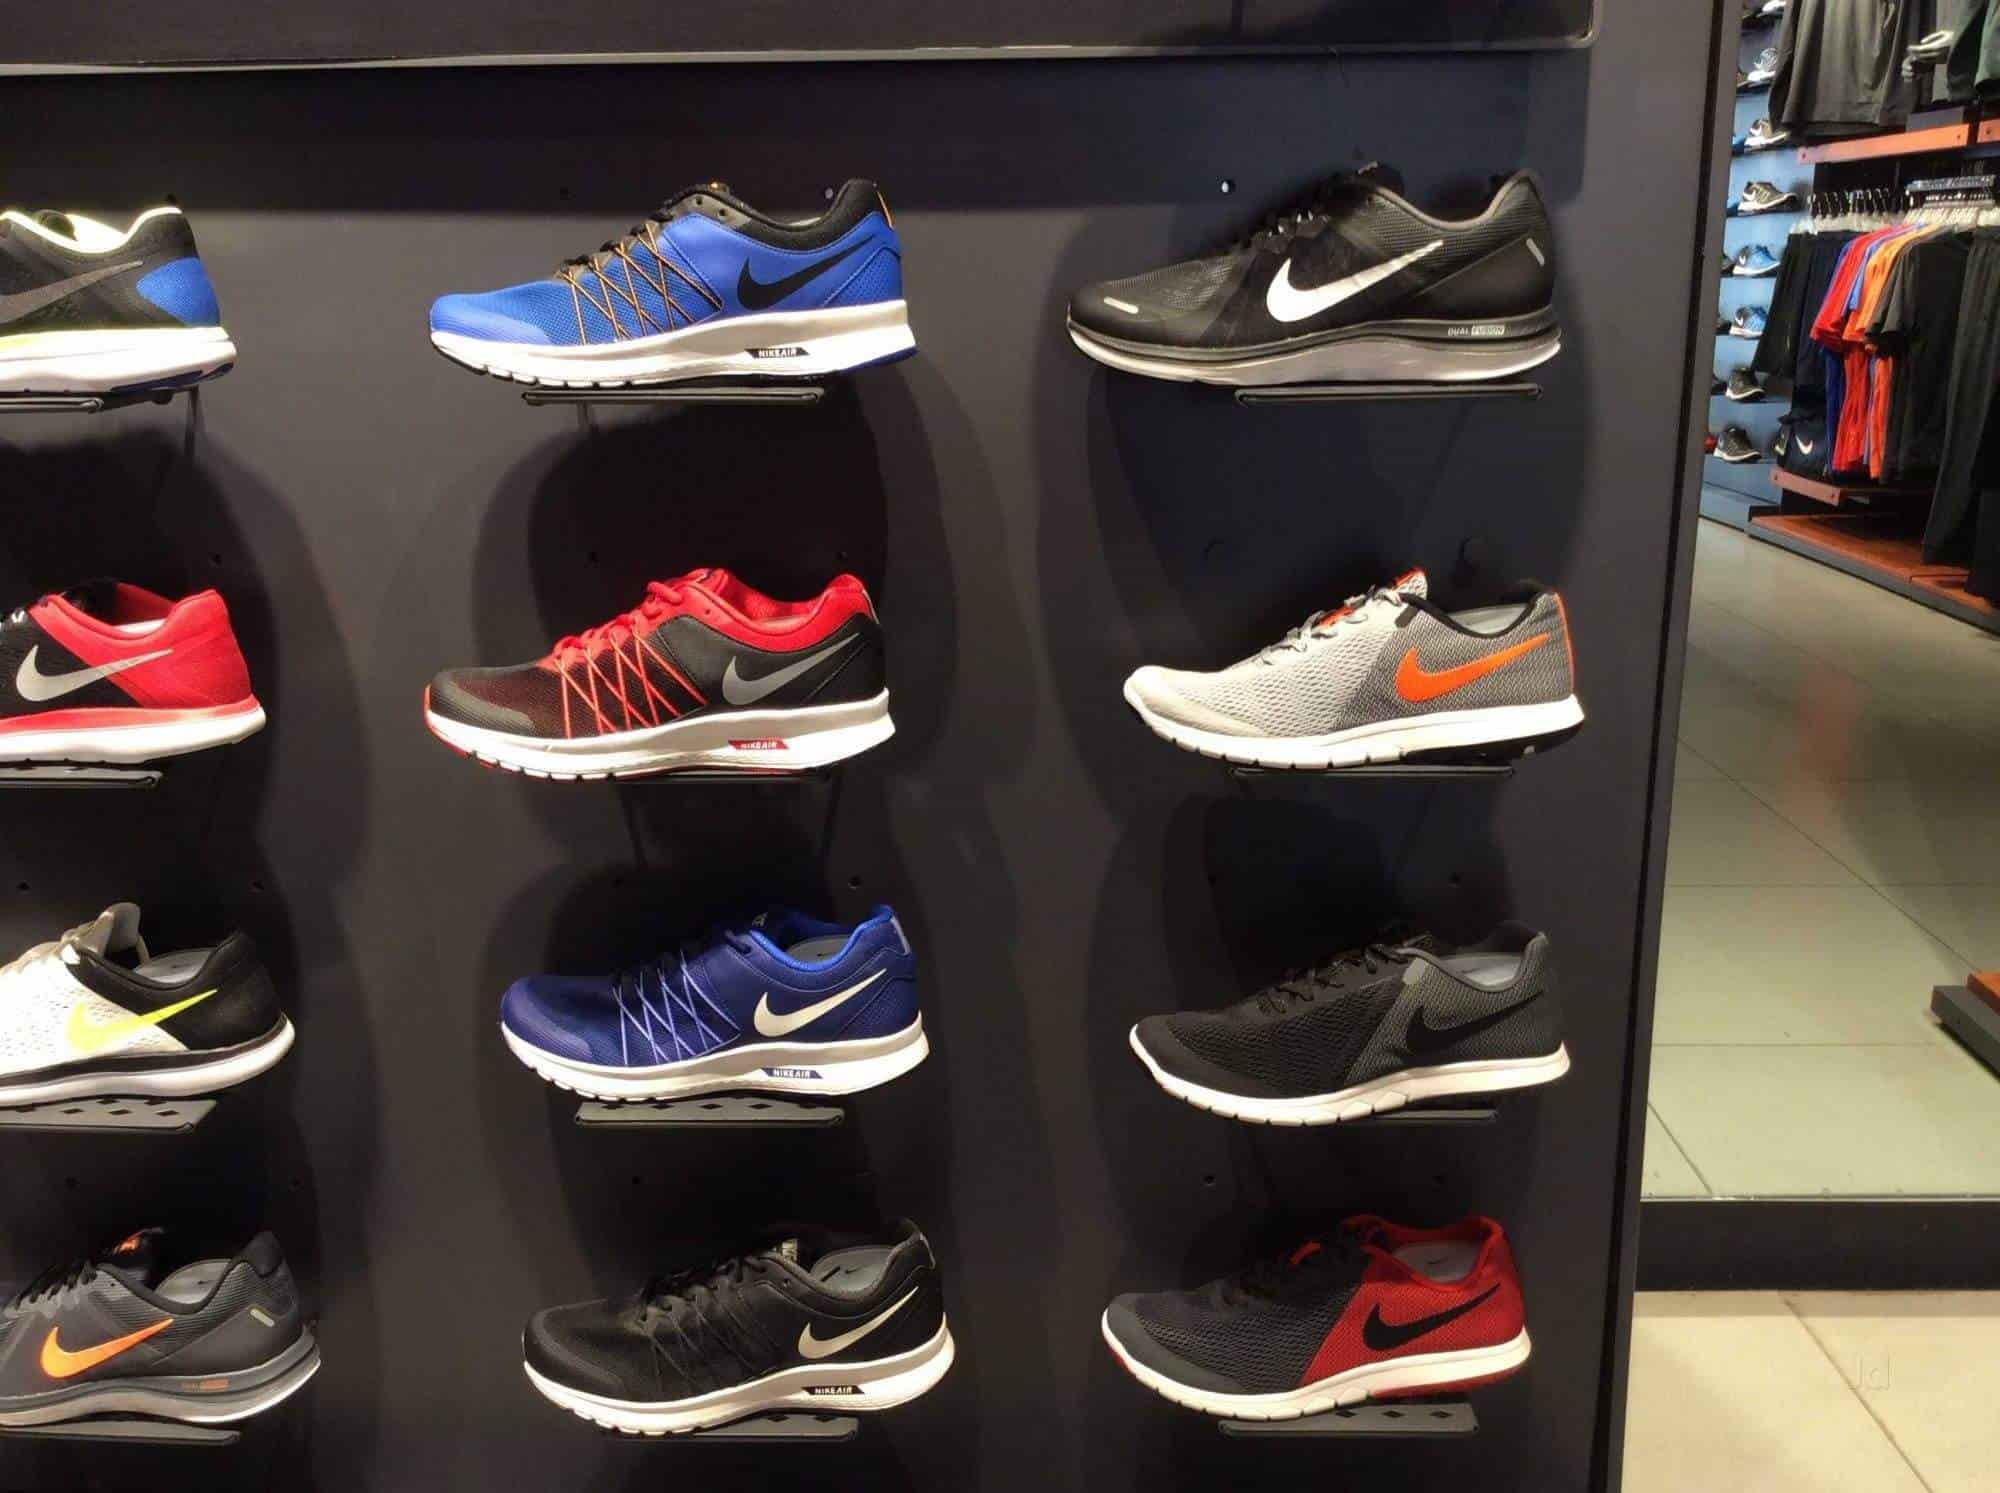 Nike Store, C G Road - Readymade Garment Retailers in Ahmedabad - Justdial